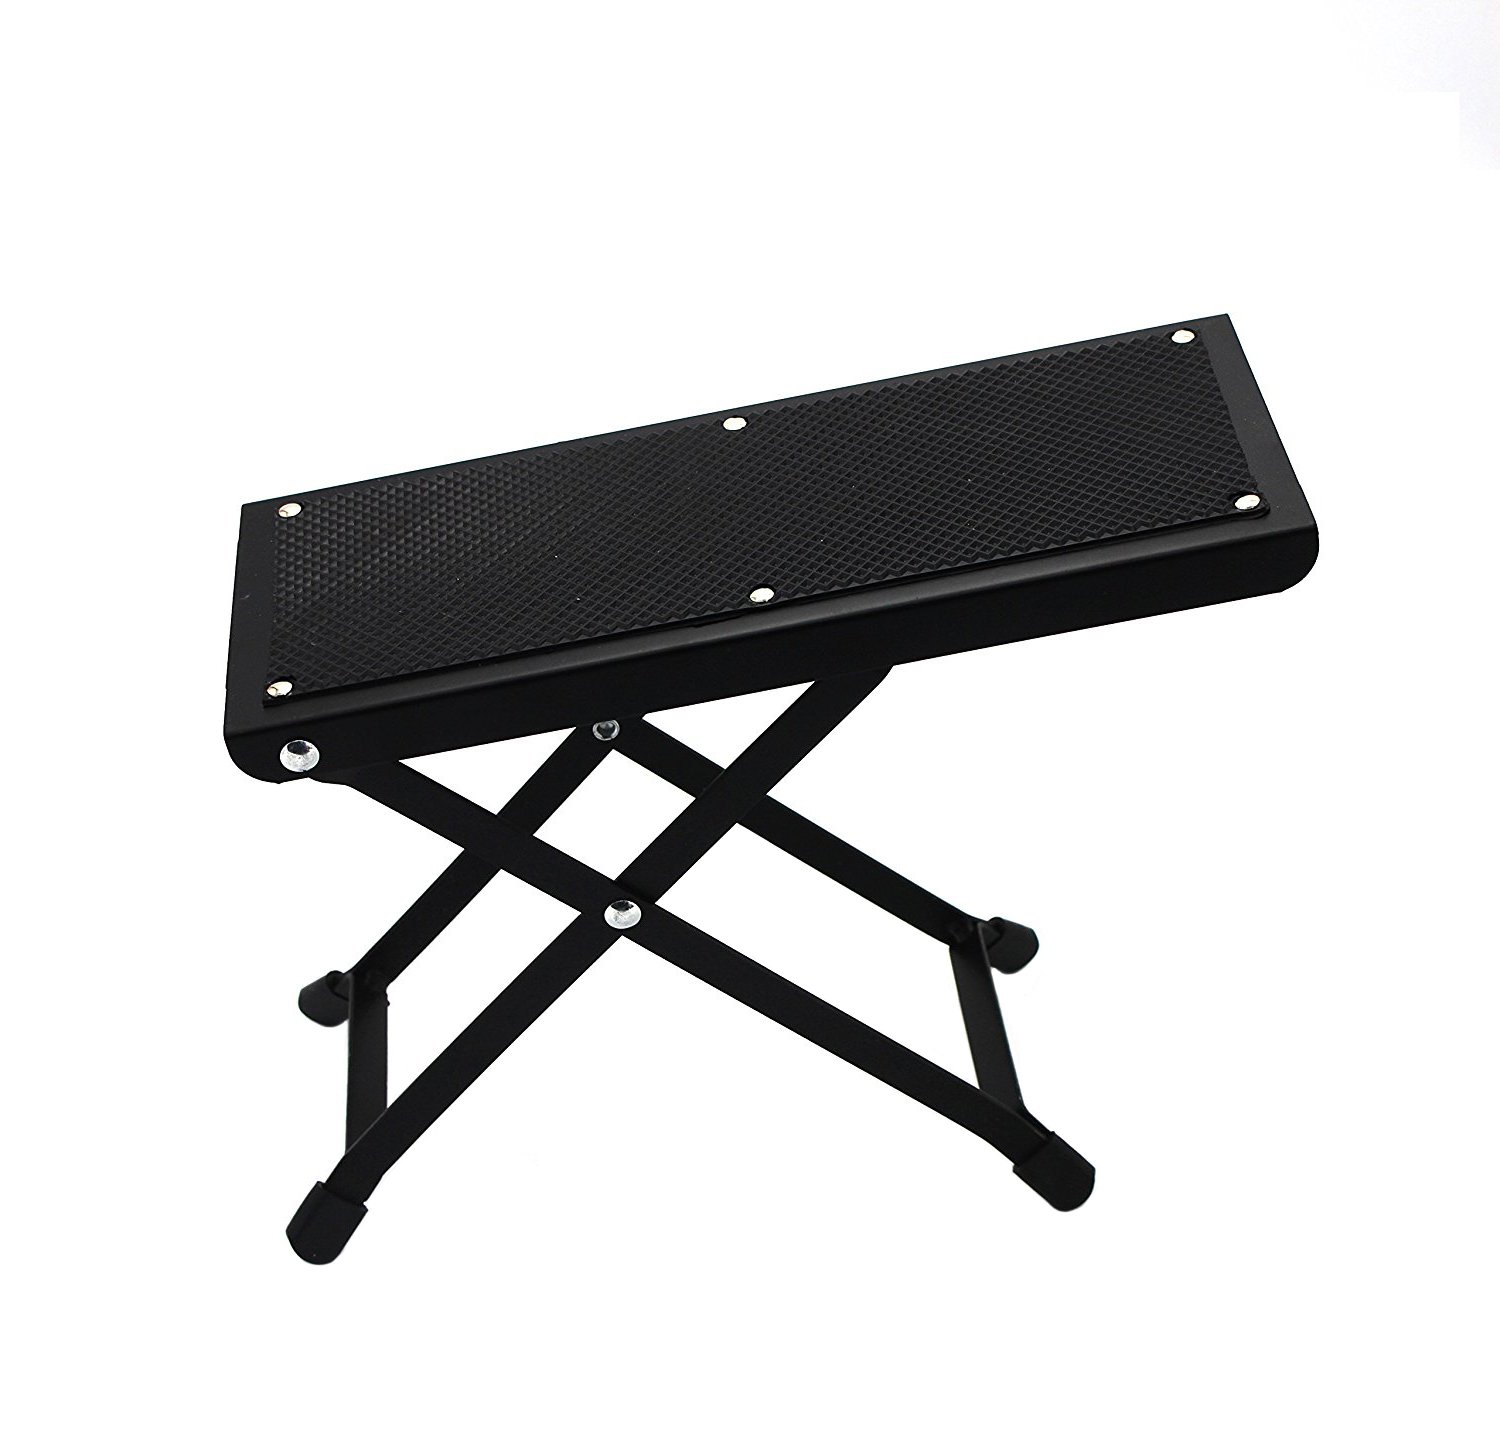 Timiy Adjustable Metal Guitar Footstool Guitar Foot Rest with 4 Fixed Height Positions Non-slip Rubber Designed Black